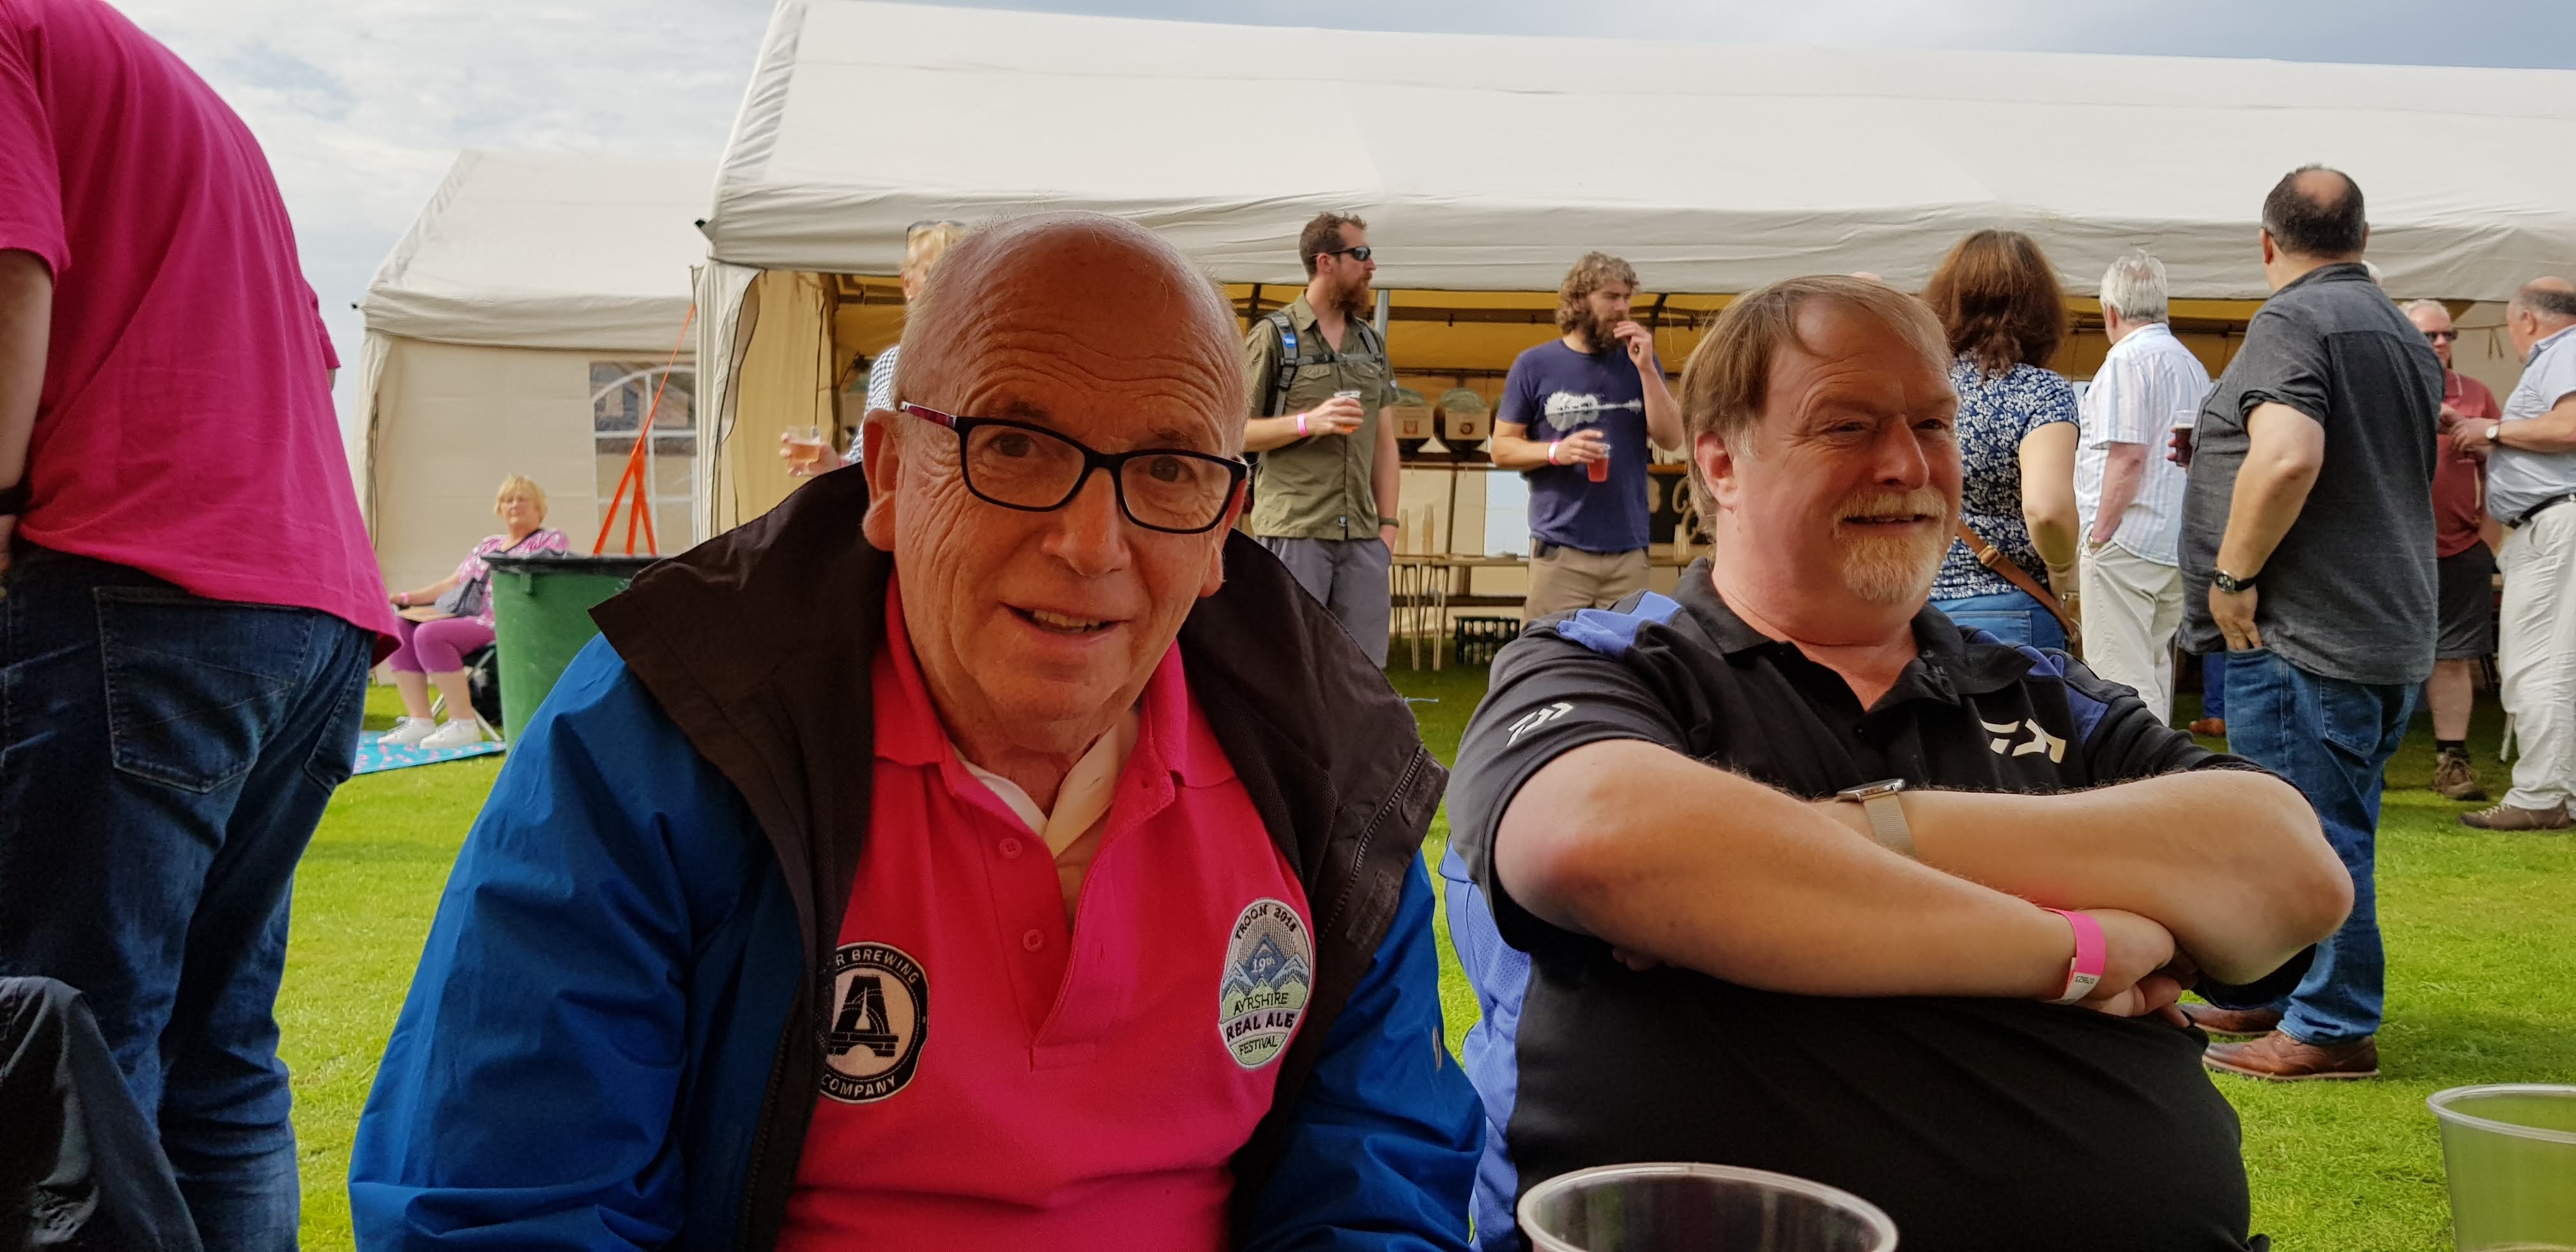 Arran Beer Festival in August 2019